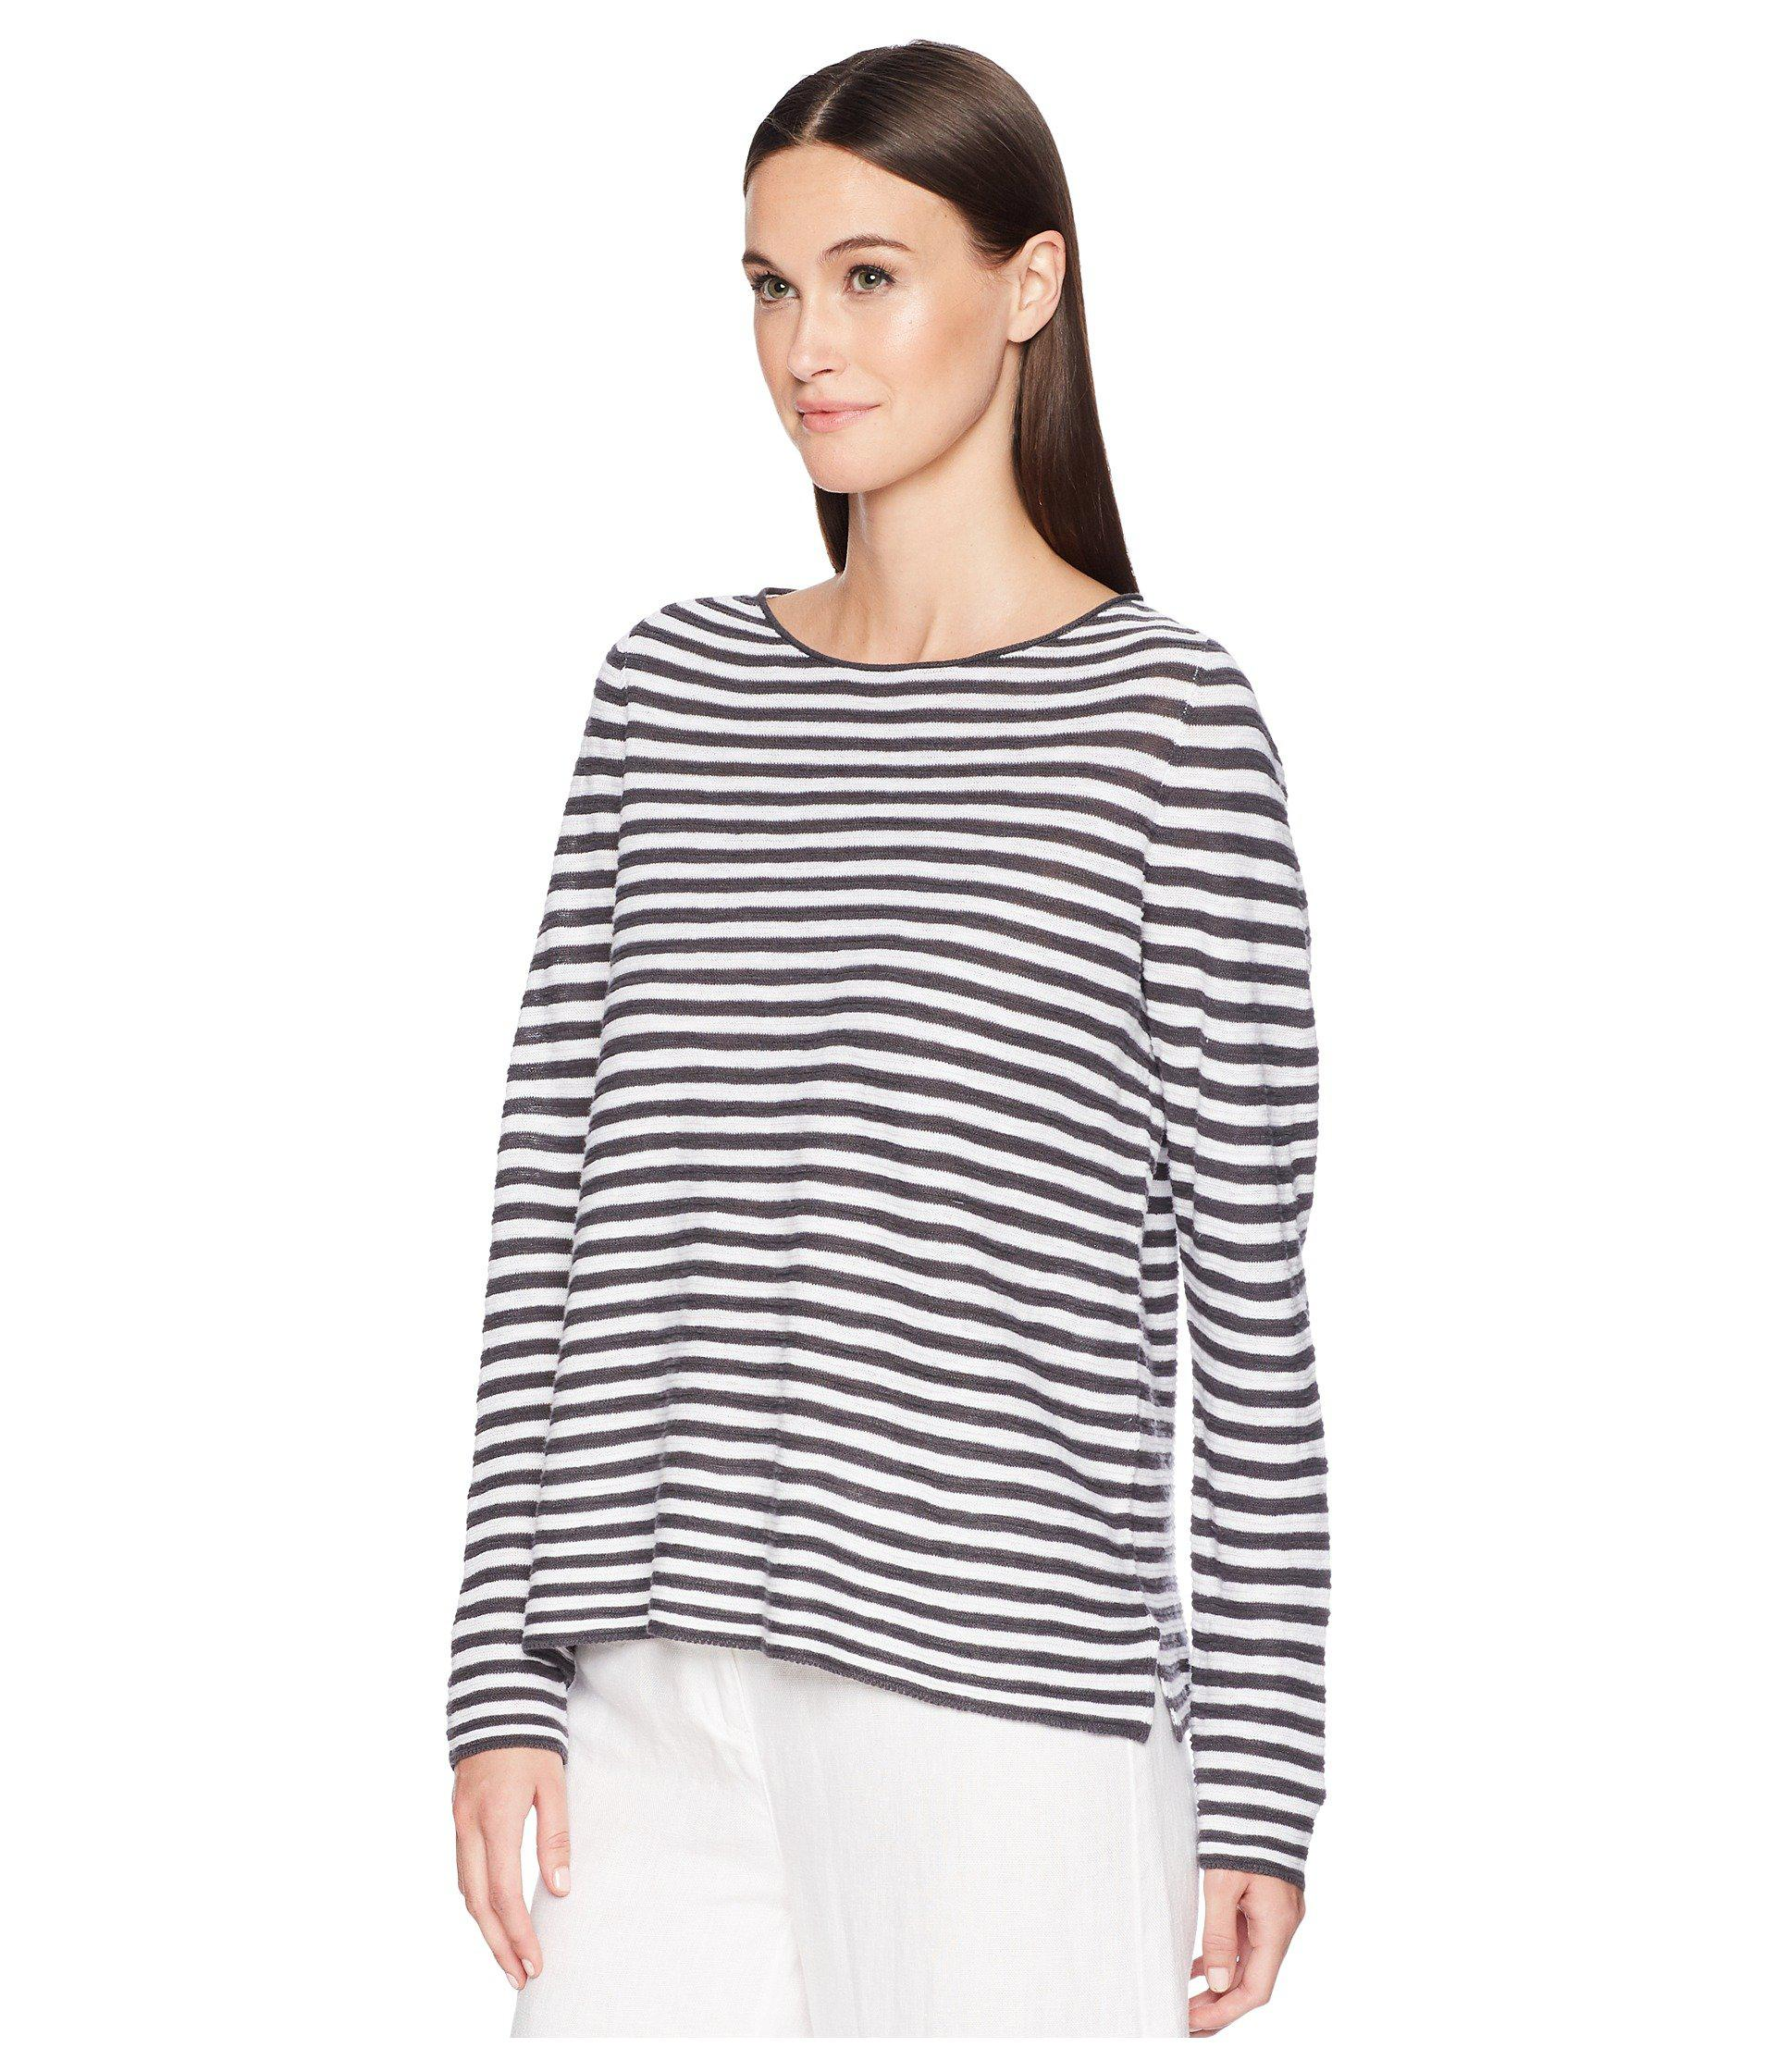 46573807c6b0be Lyst - Eileen Fisher Organic Linen Cotton Stripe Top - Save 49%